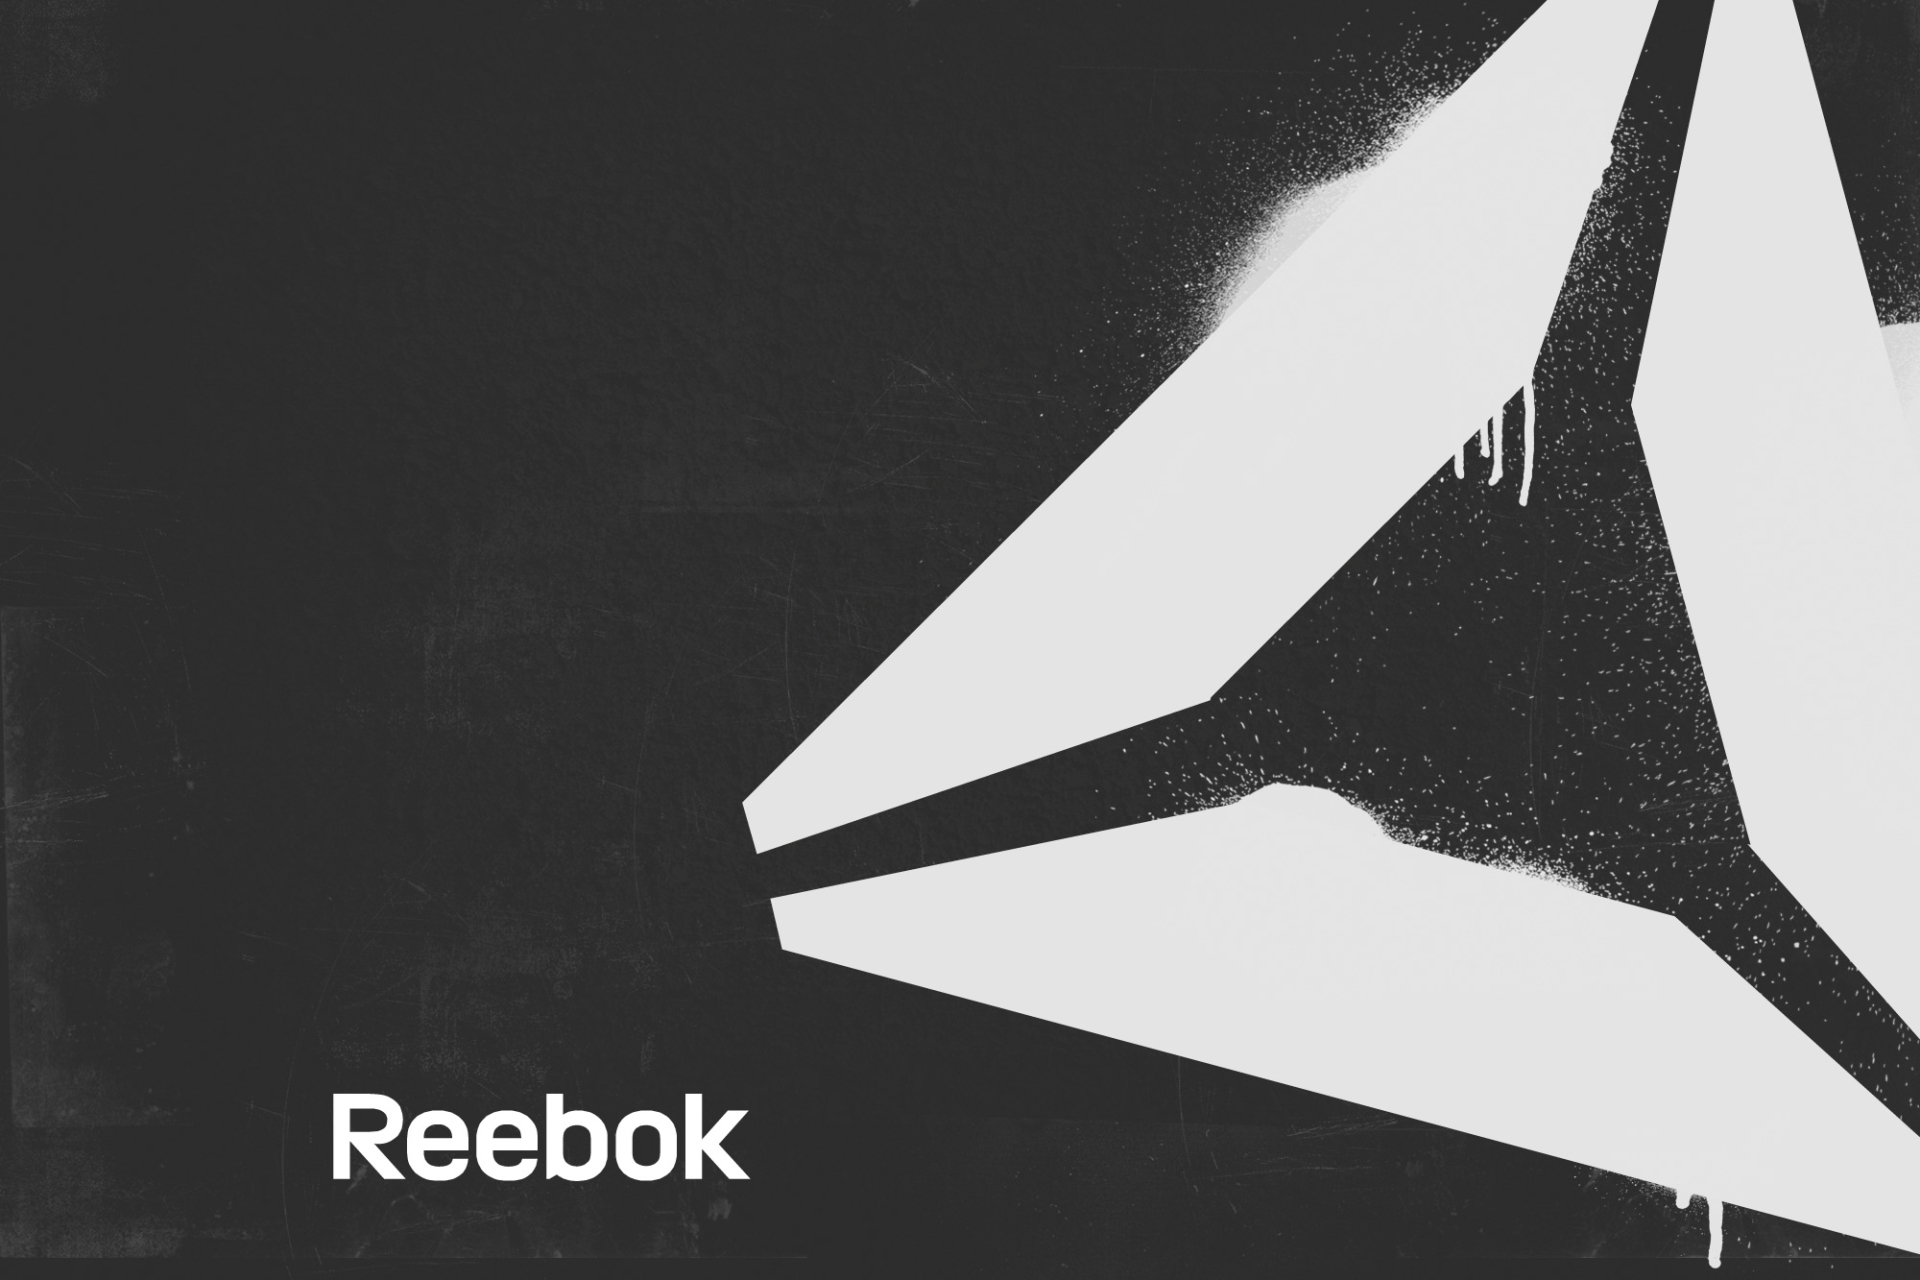 Reebok Wallpaper Aweseome HD Background For Your PC